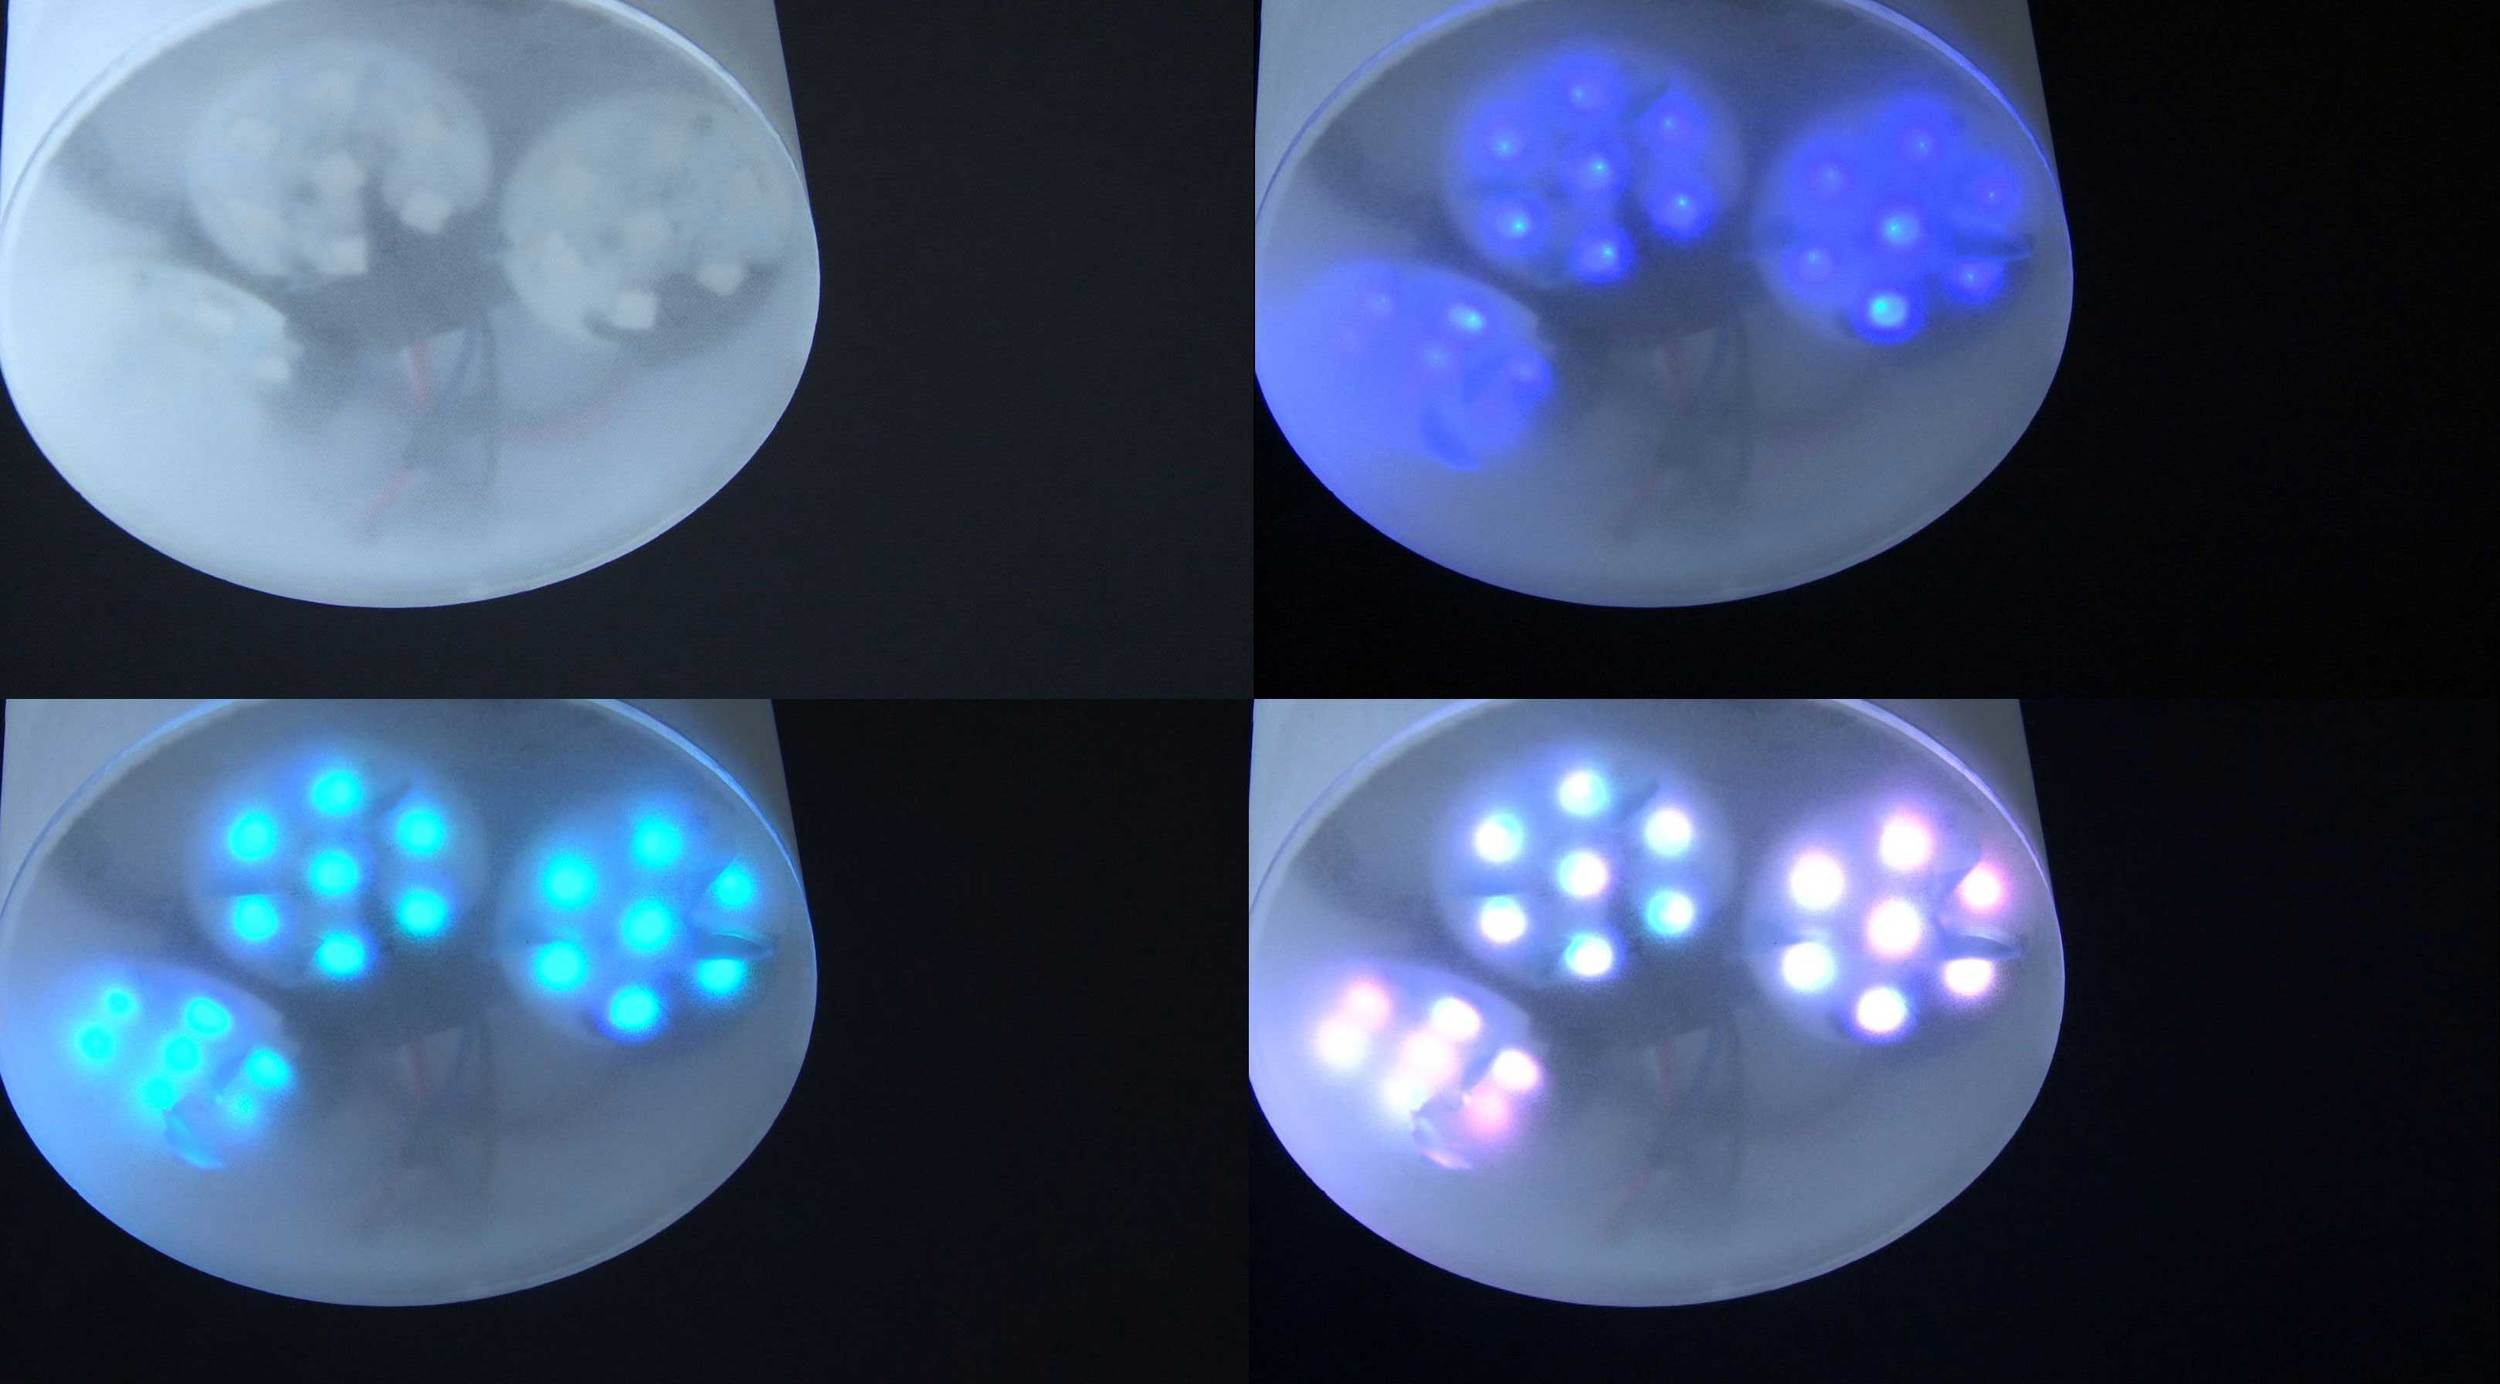 21 RGB LEDs changes into various colors according the user's taste.